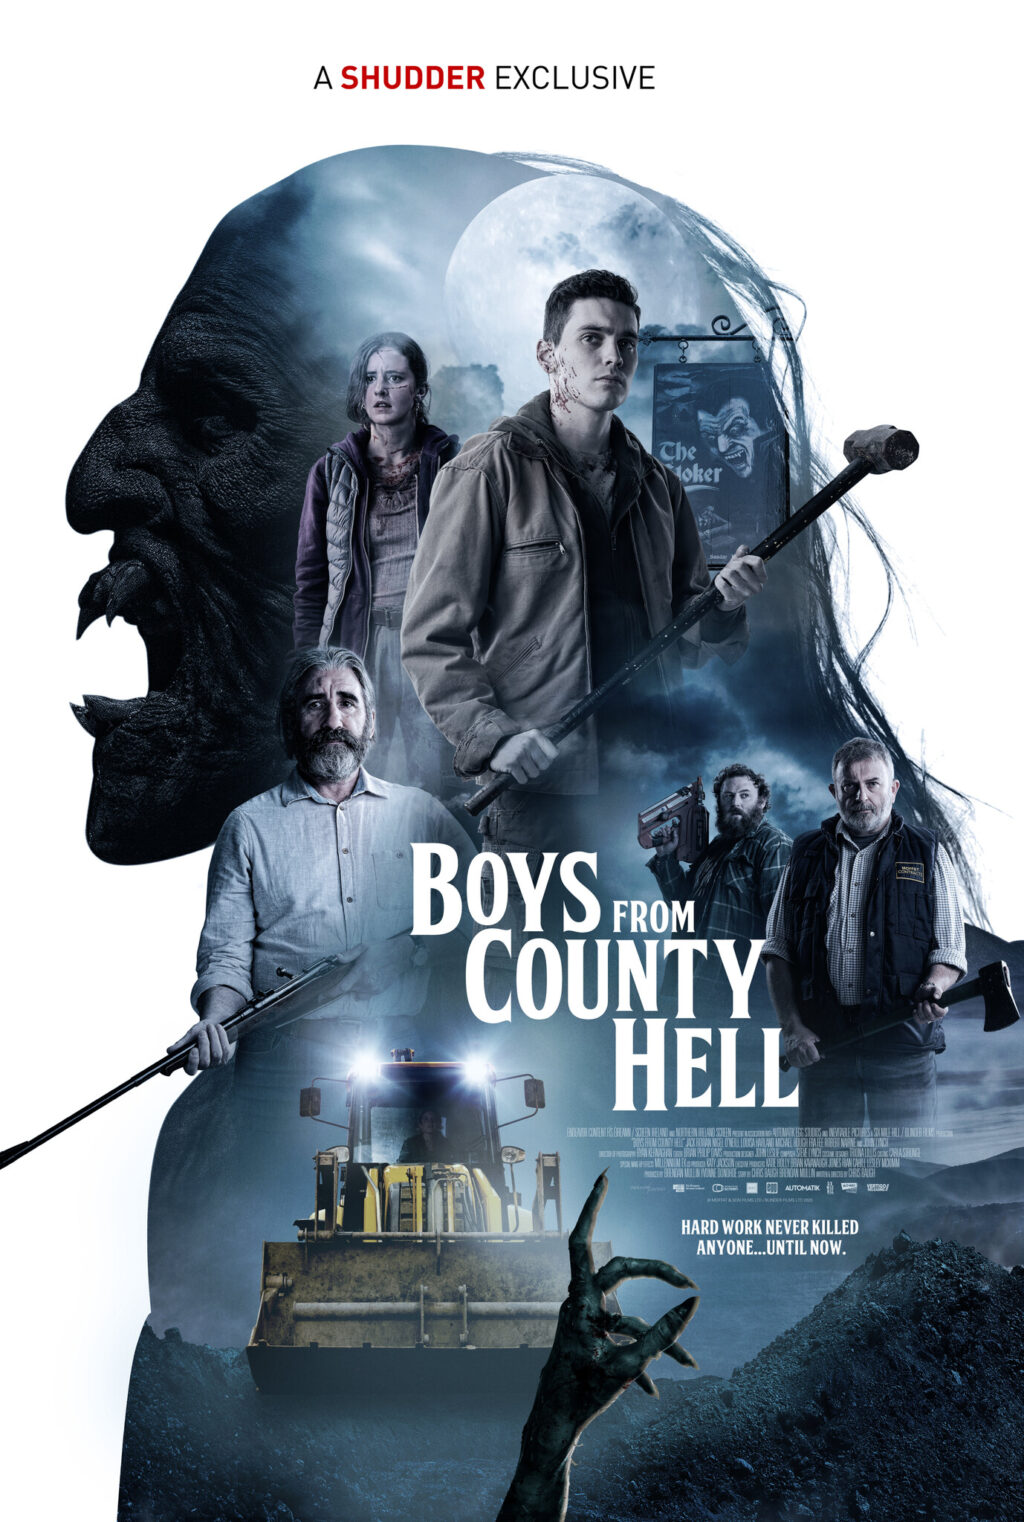 BoysFromCountyHell 1024x1522 - BOYS FROM COUNTY HELL Review- An Unconventional New Vampire Movie